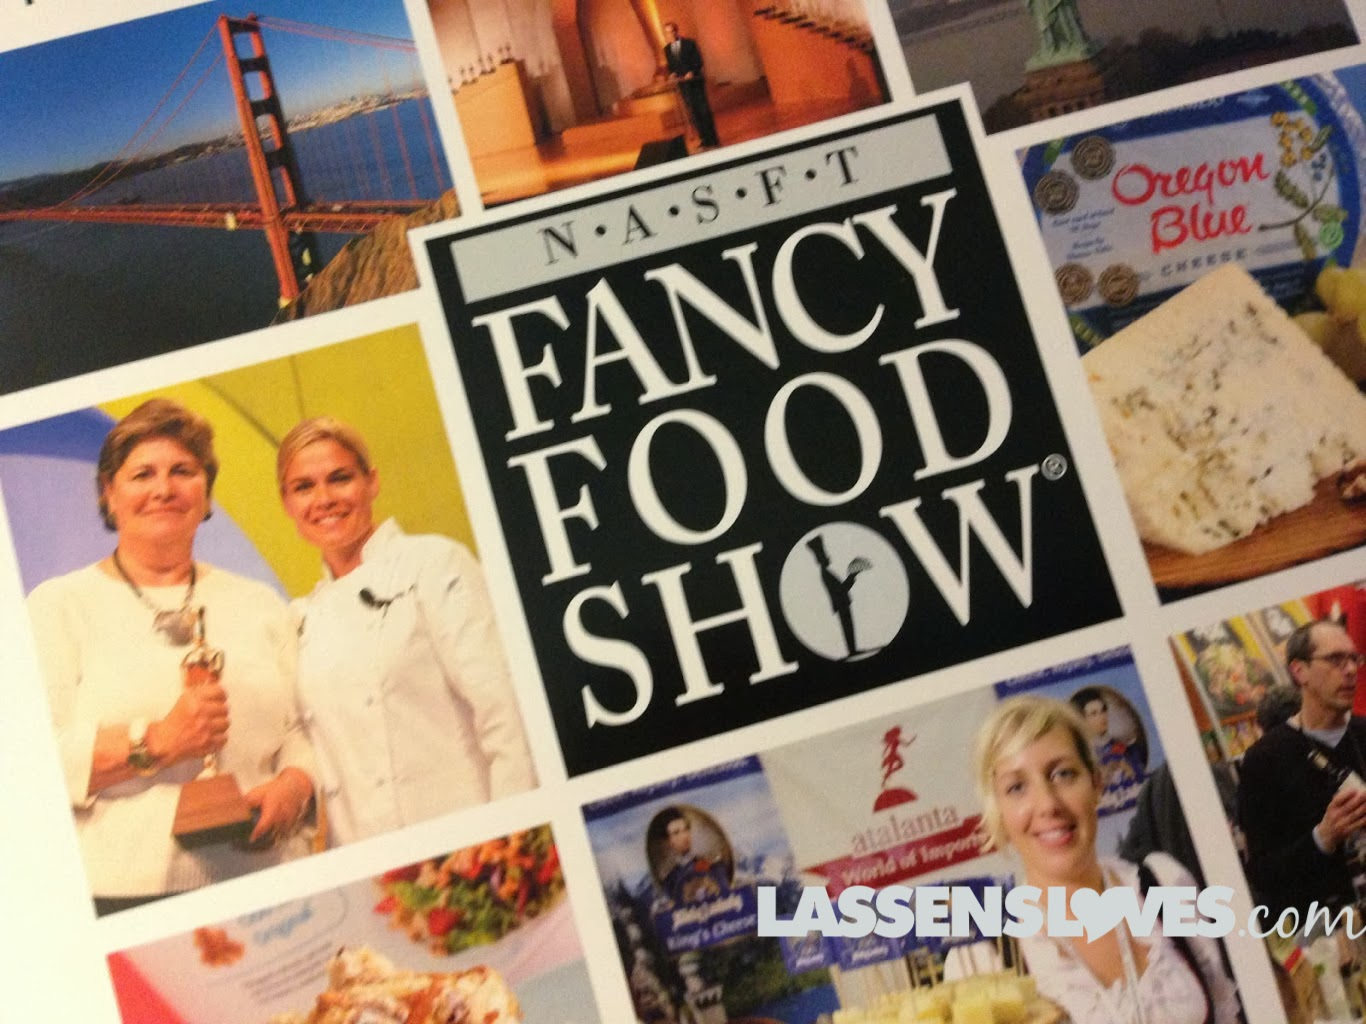 fancy+foods+show, San+Francisco